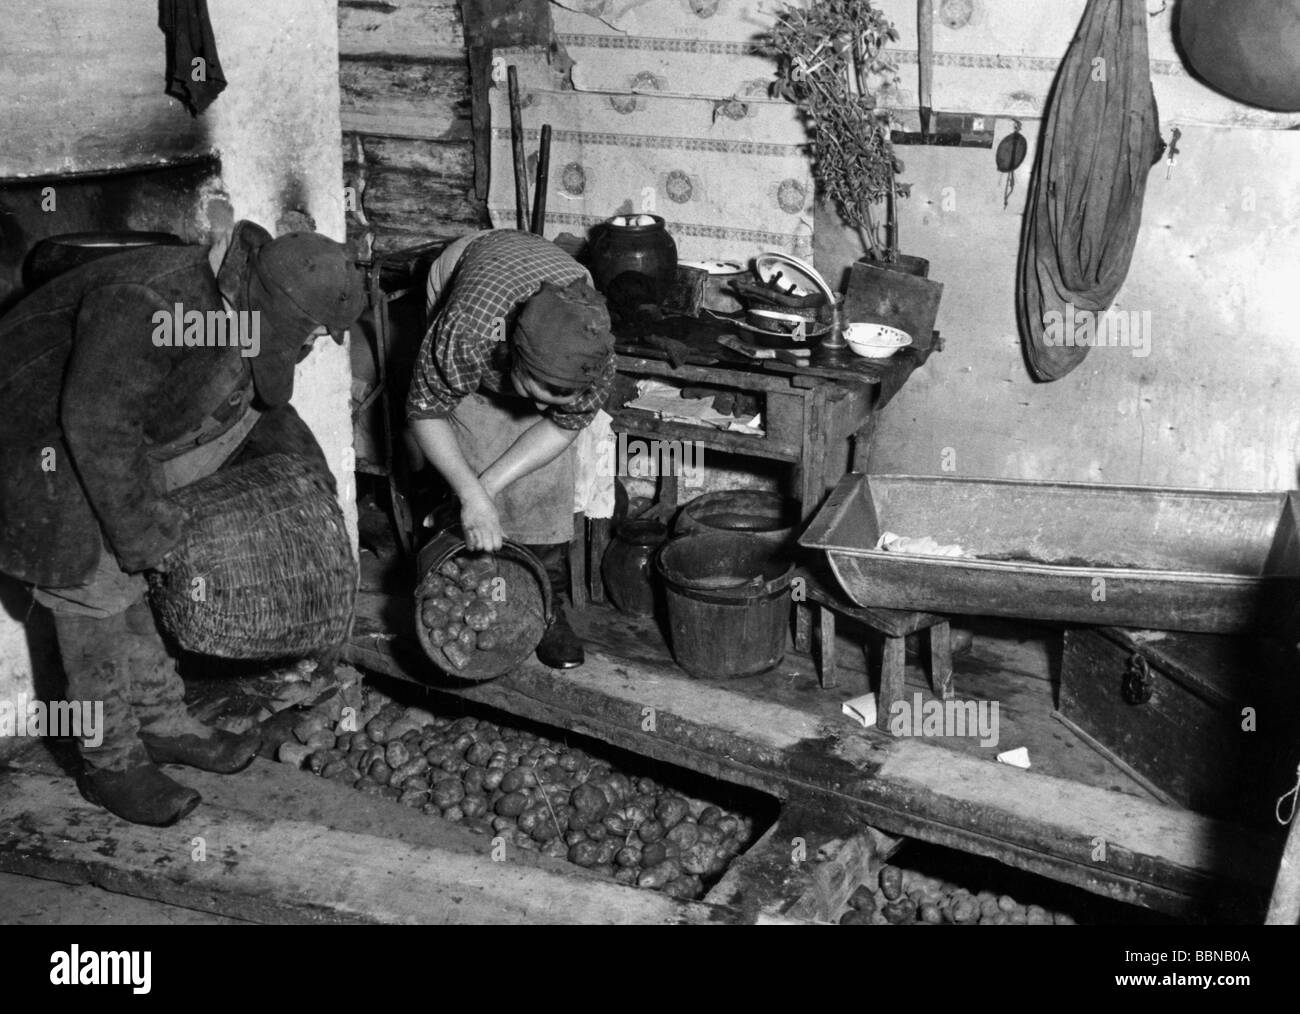 geography / travel, Russia, people, Russian farmers storing potatoes under the planks of their house, Sytshevka - Stock Image